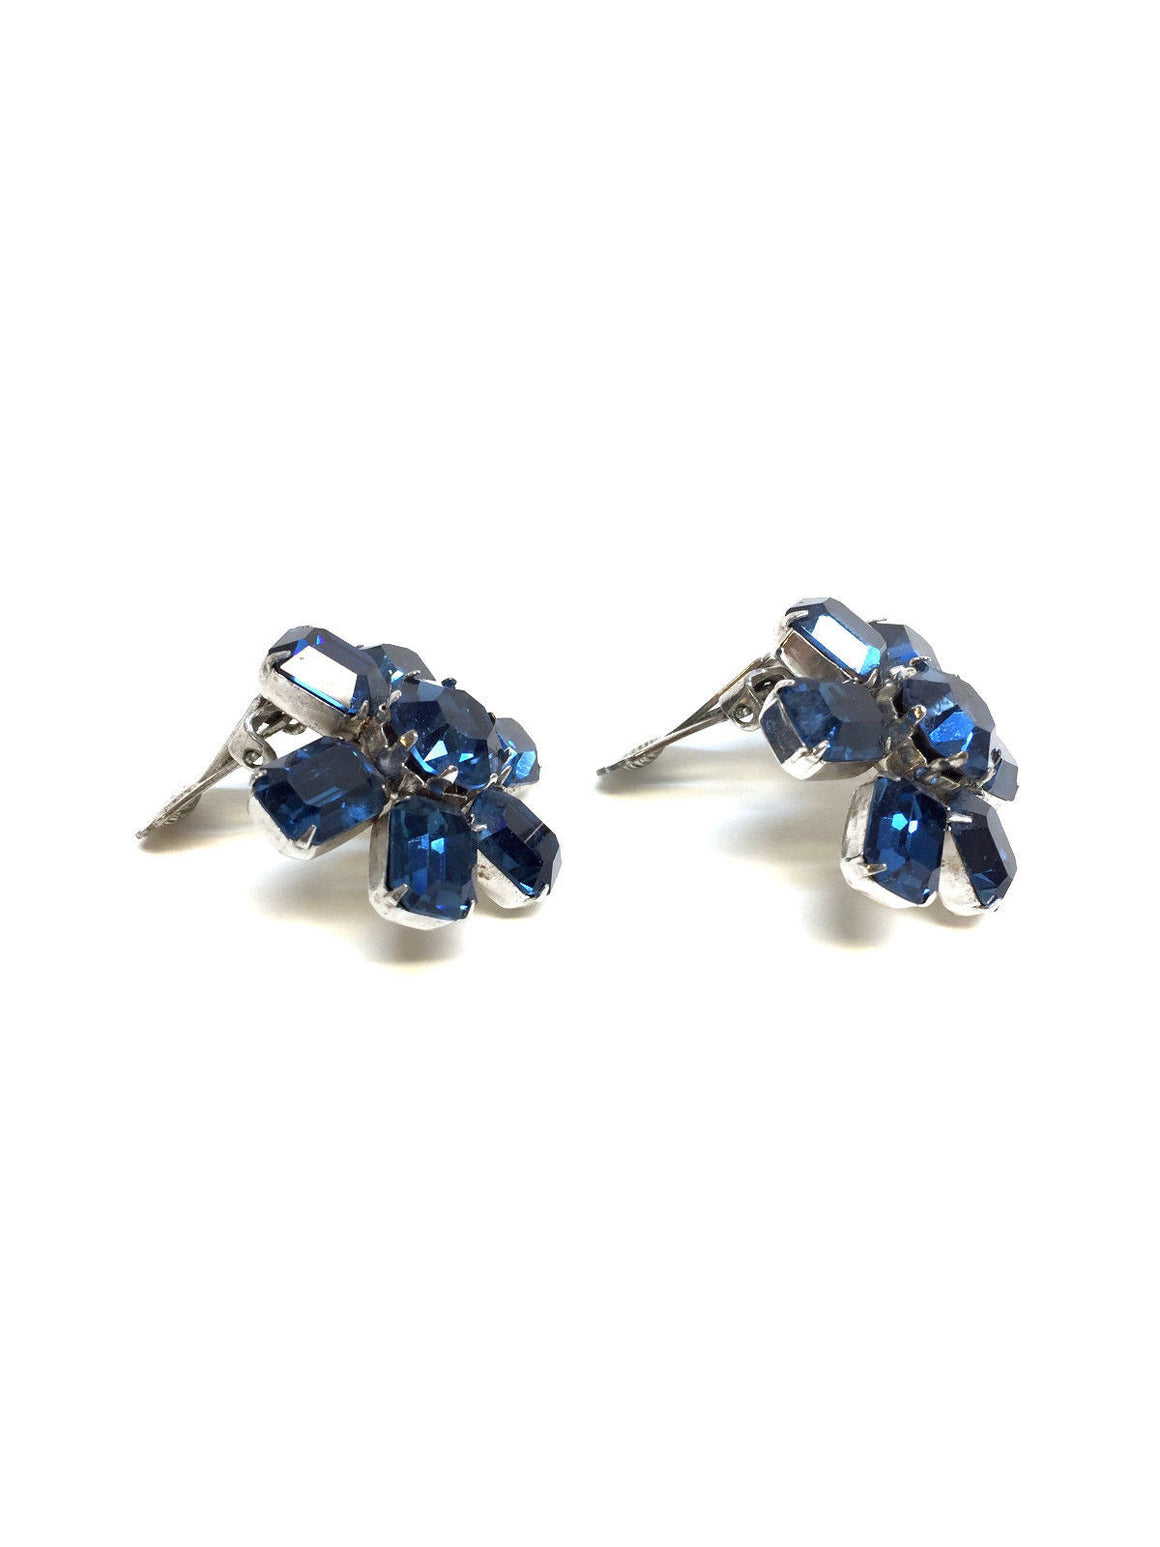 bisbiz.com WEISS VINTAGE Sapphire-Blue Faceted Crystal Flower Clip Earrings - Bis Luxury Resale